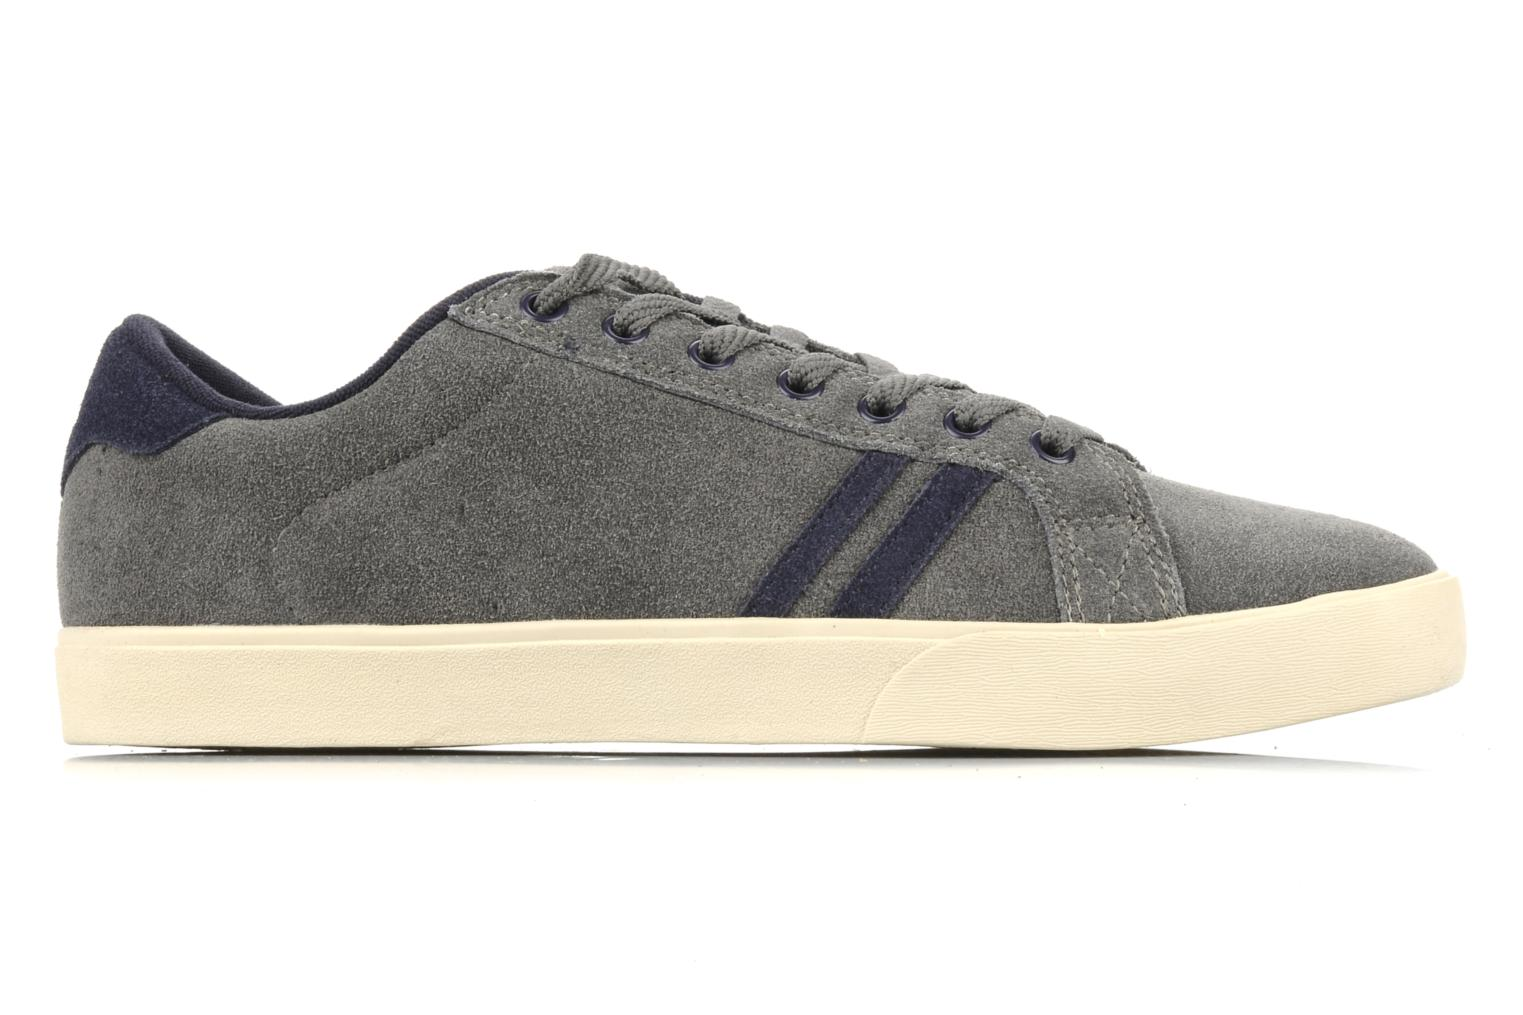 The Leo Dark Grey